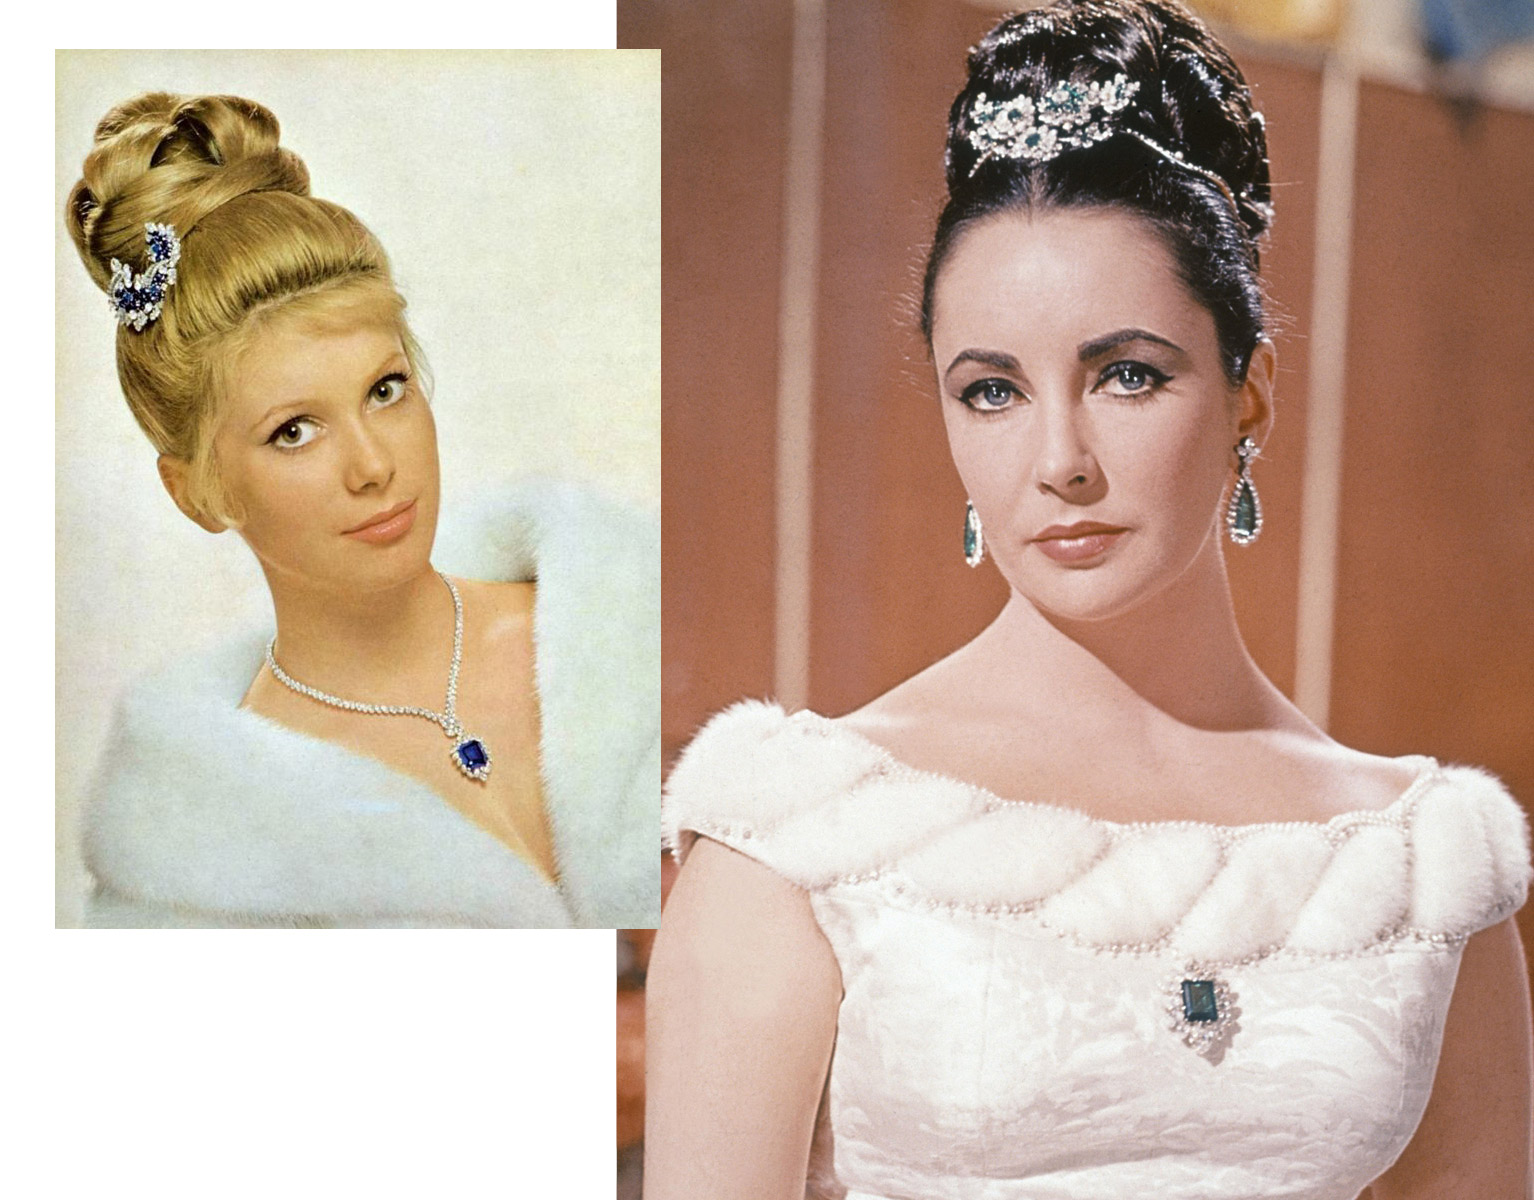 Catherine Deneuve on the left and Elizabeth Taylor on the right wearing brooches in their hair